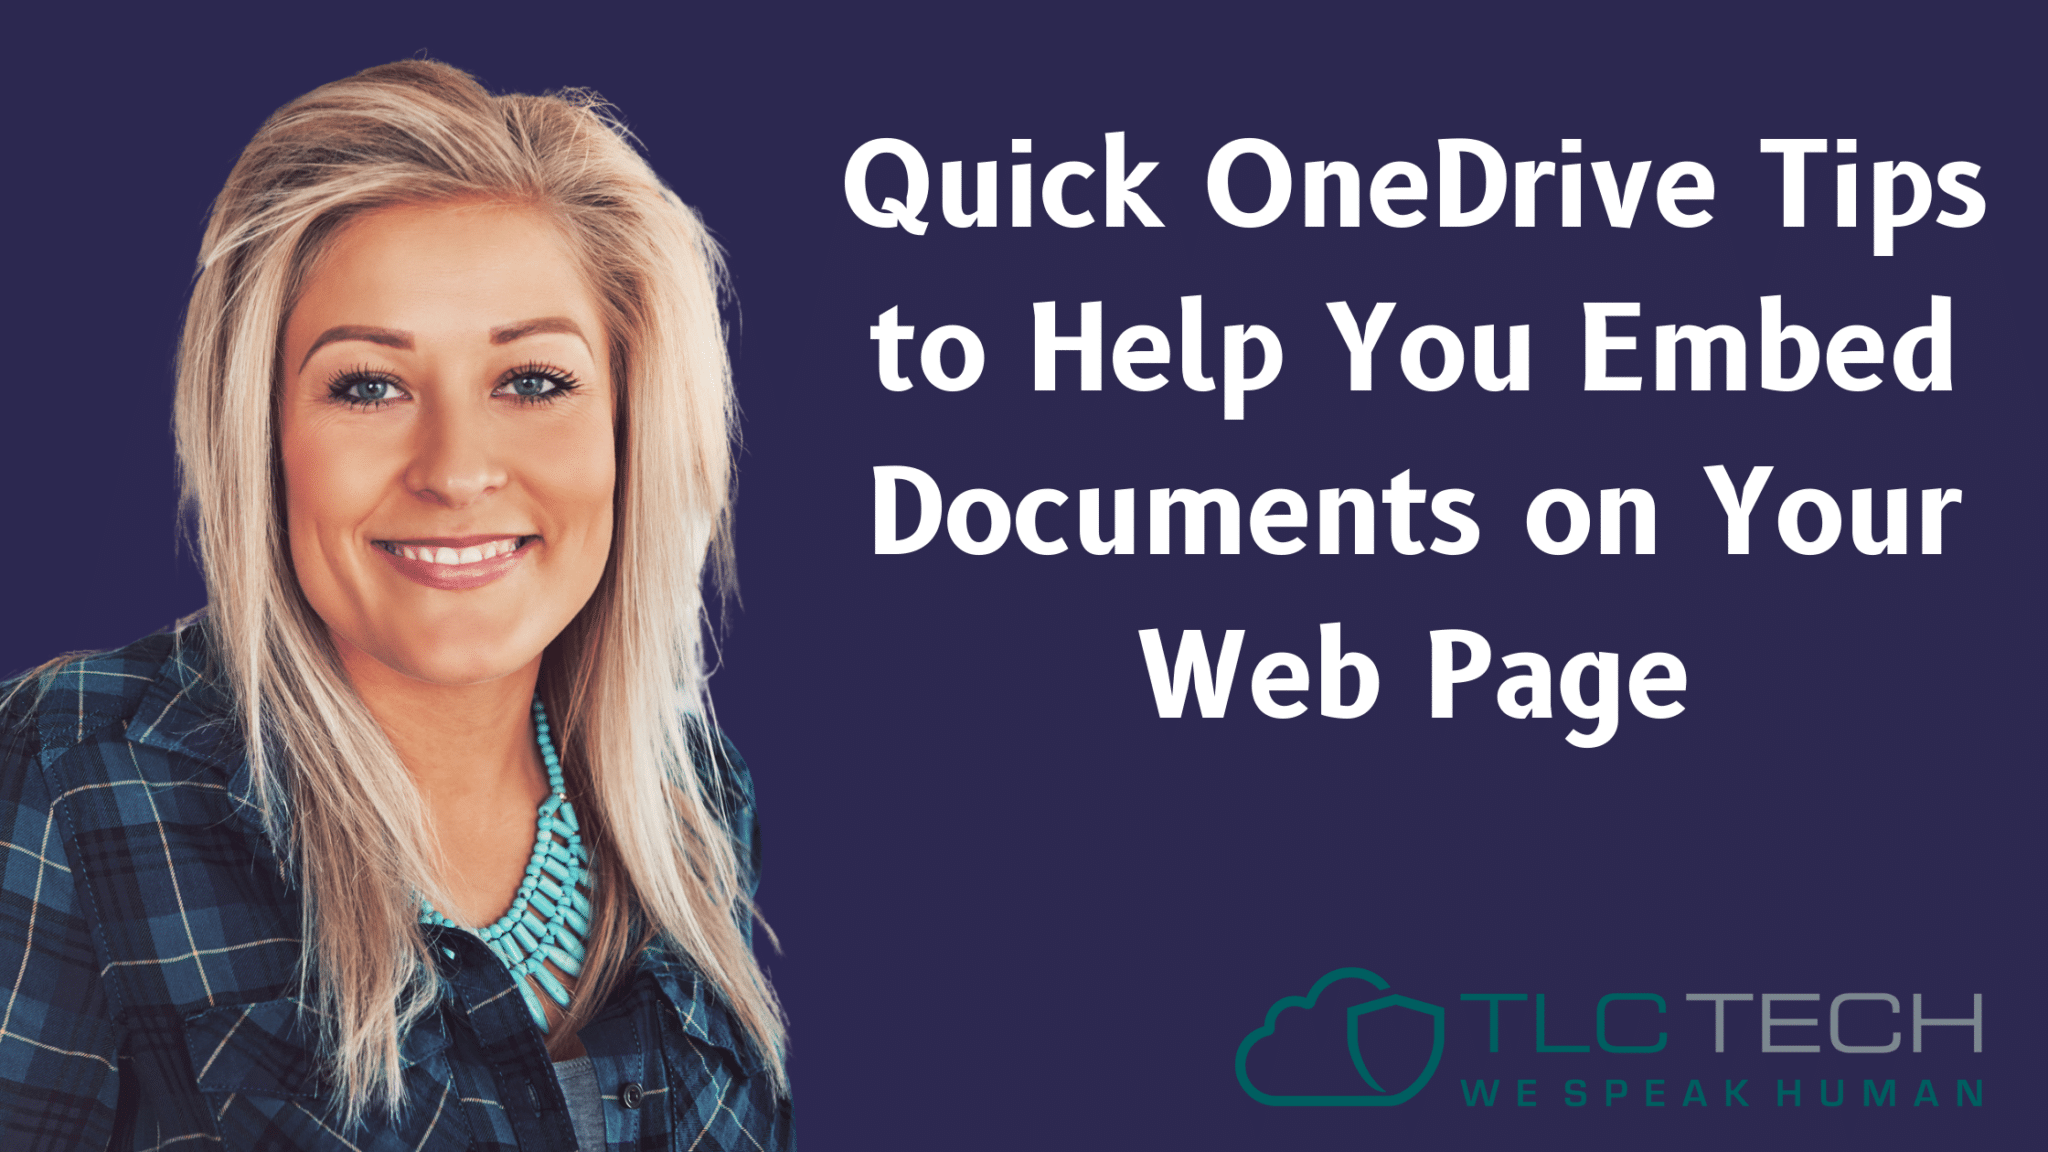 Quick OneDrive Tips to Help You Embed Documents on Your Web Page